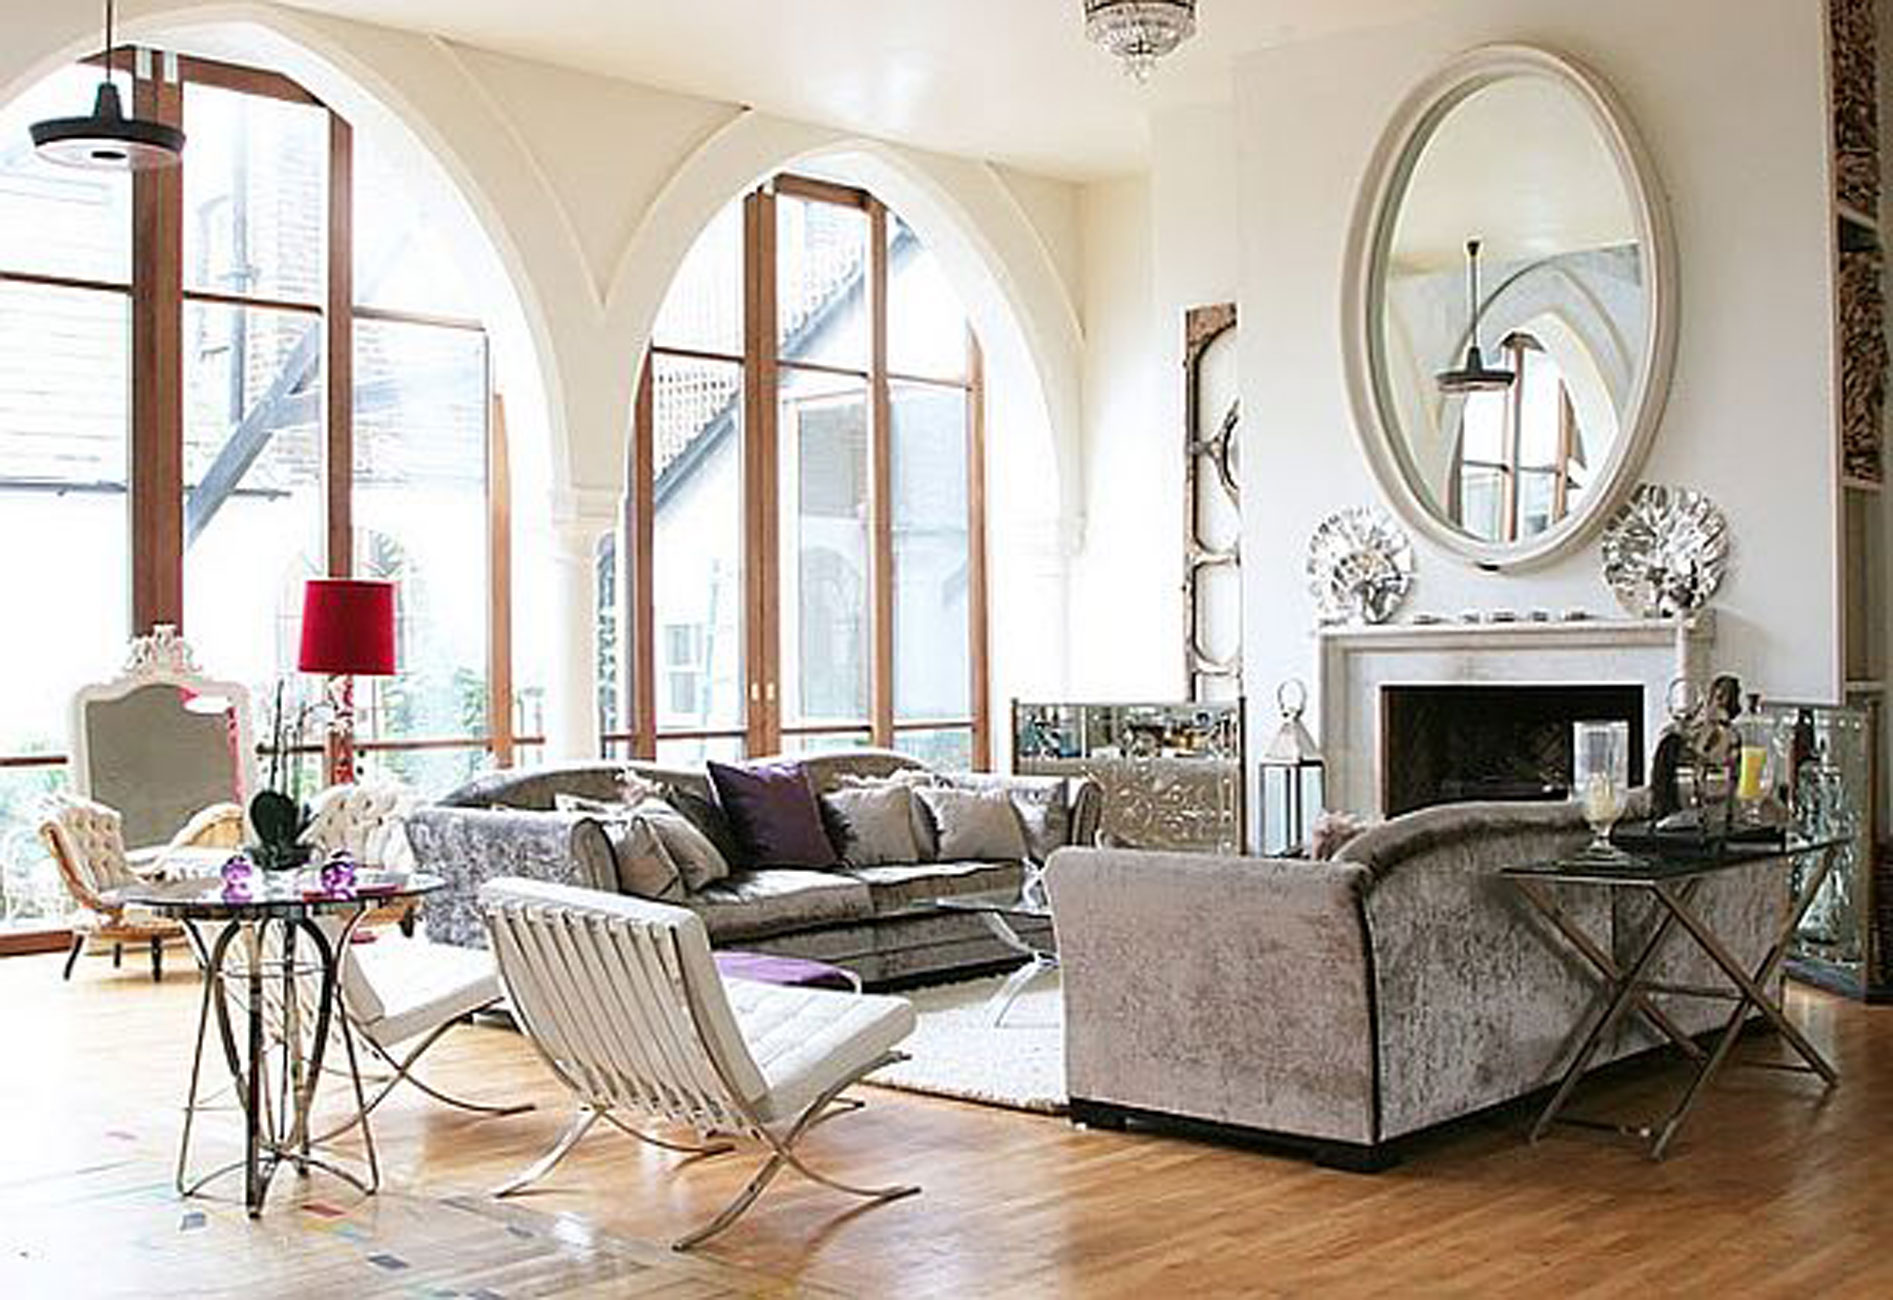 187 Old Church Turn Into Contemporary House Livingroom